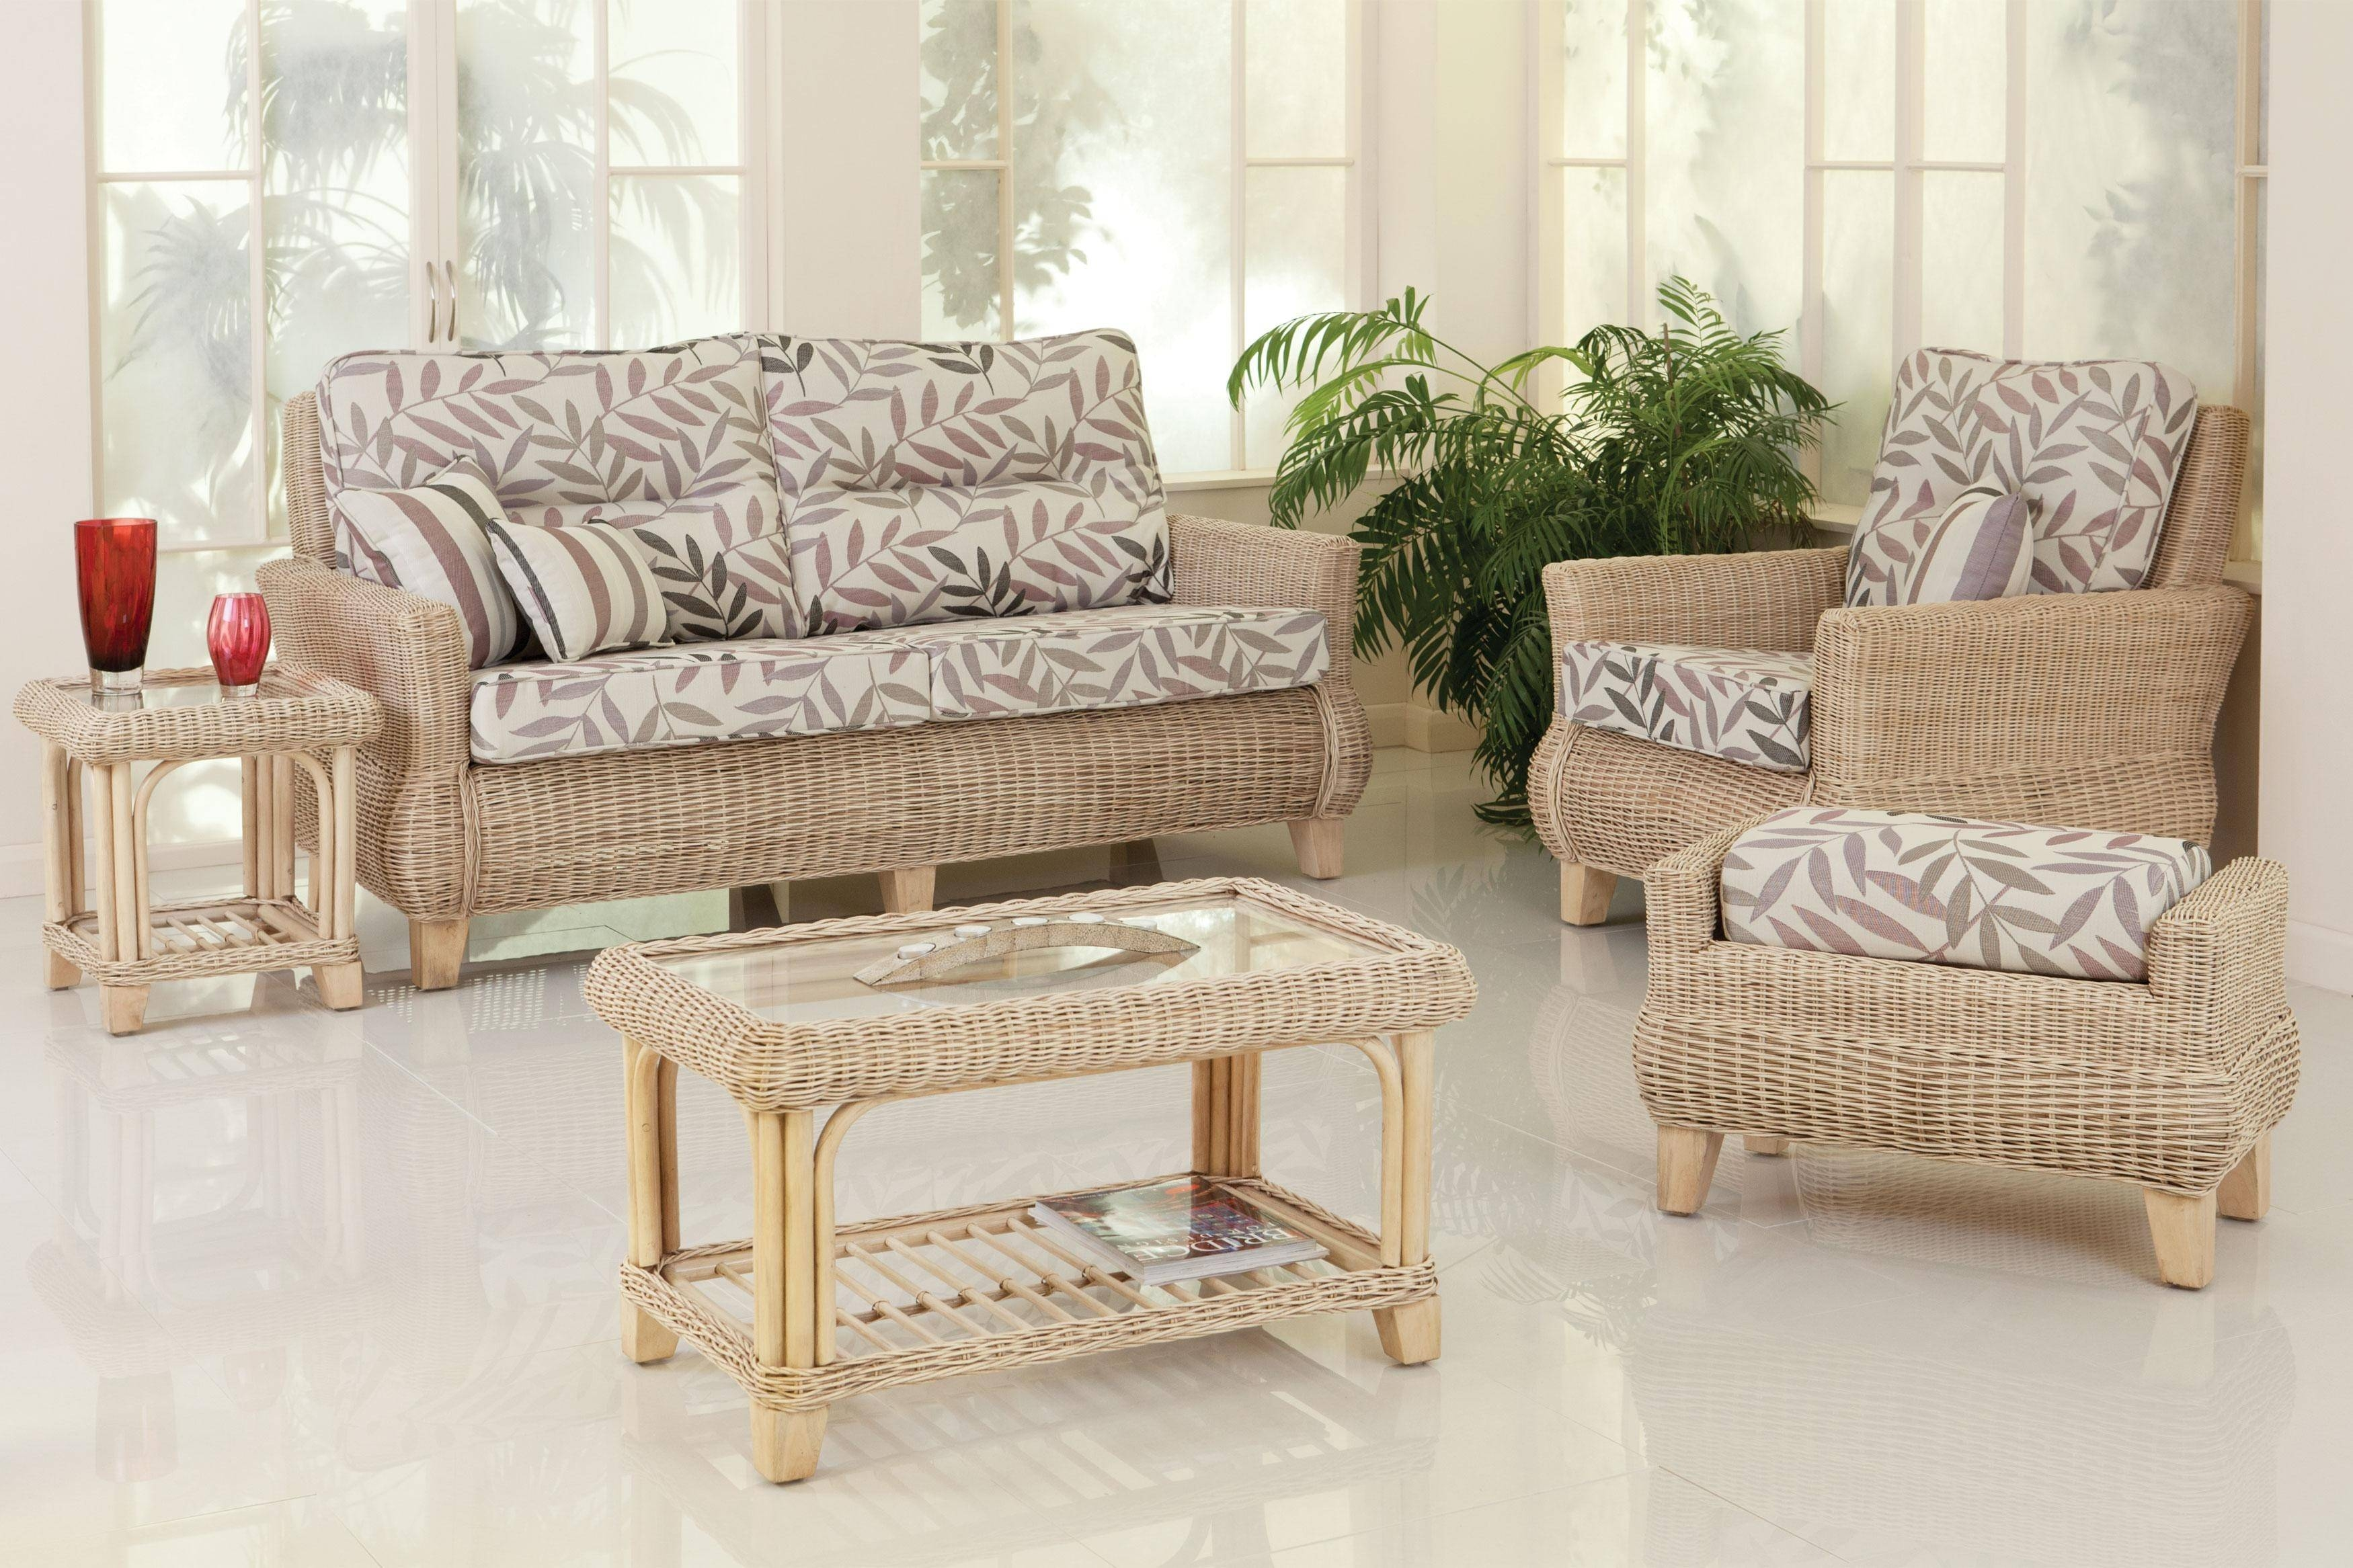 20 Collection Of Bamboo Sofas | Sofa Ideas pertaining to Bamboo Sofas (Image 1 of 15)